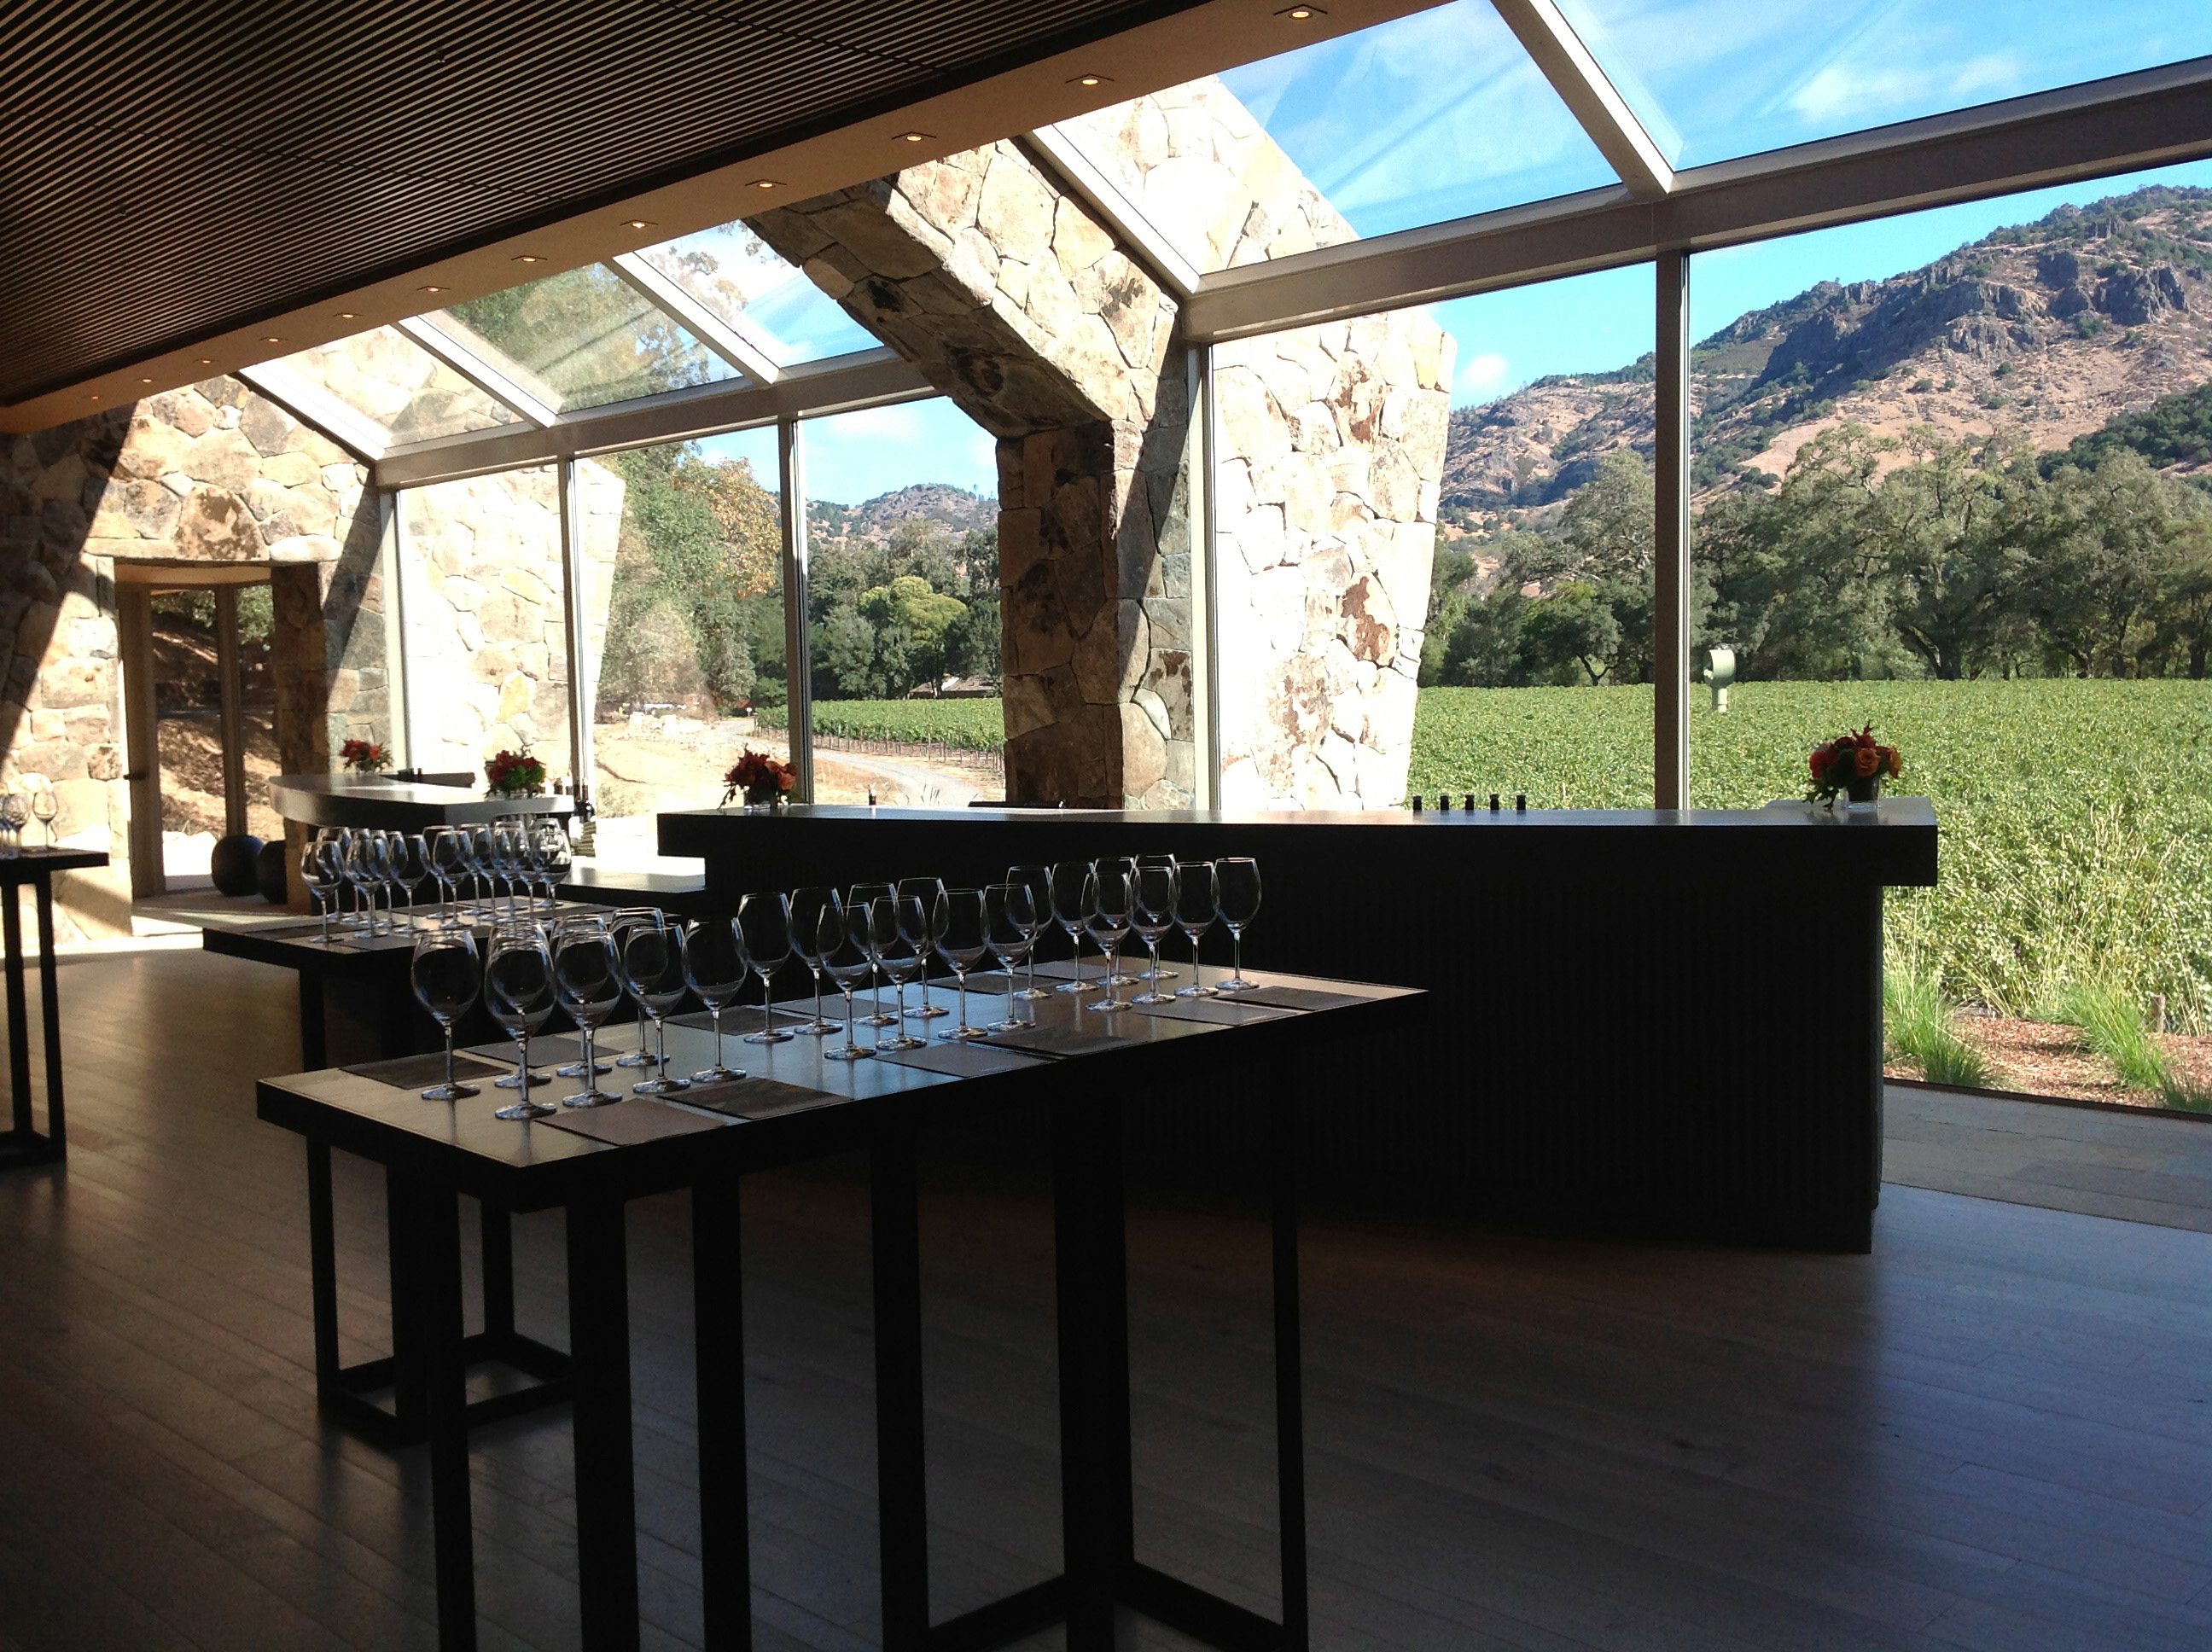 The FAY Outlook & Visitor Center possesses one of the best views in the Napa Valley as it overlooks the famous FAY Vineyard and the Stags Leap Palisades.